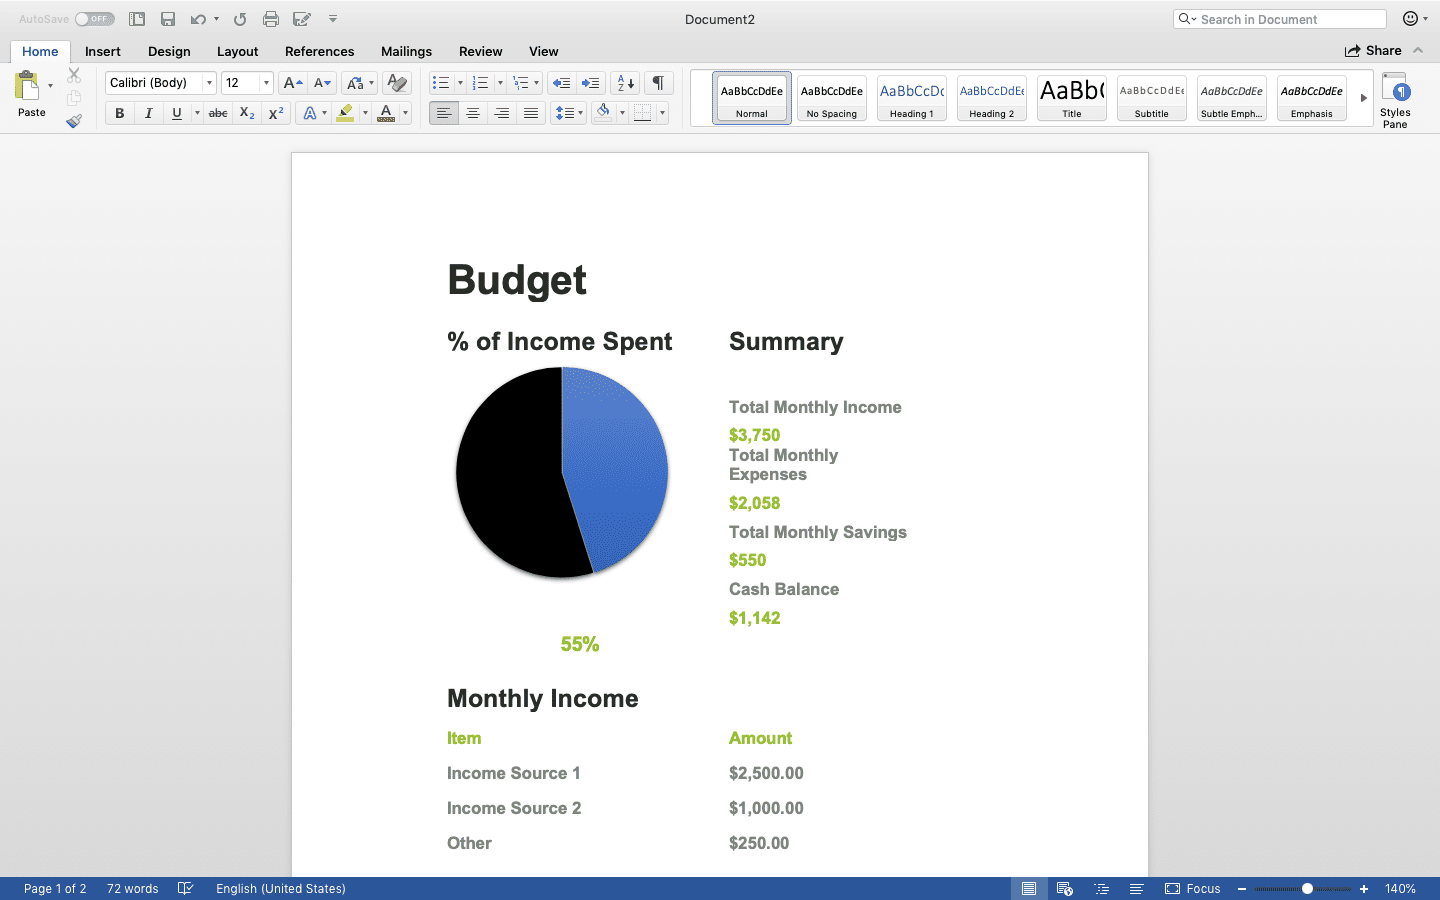 Excel spreadsheet converted into Microsoft Word